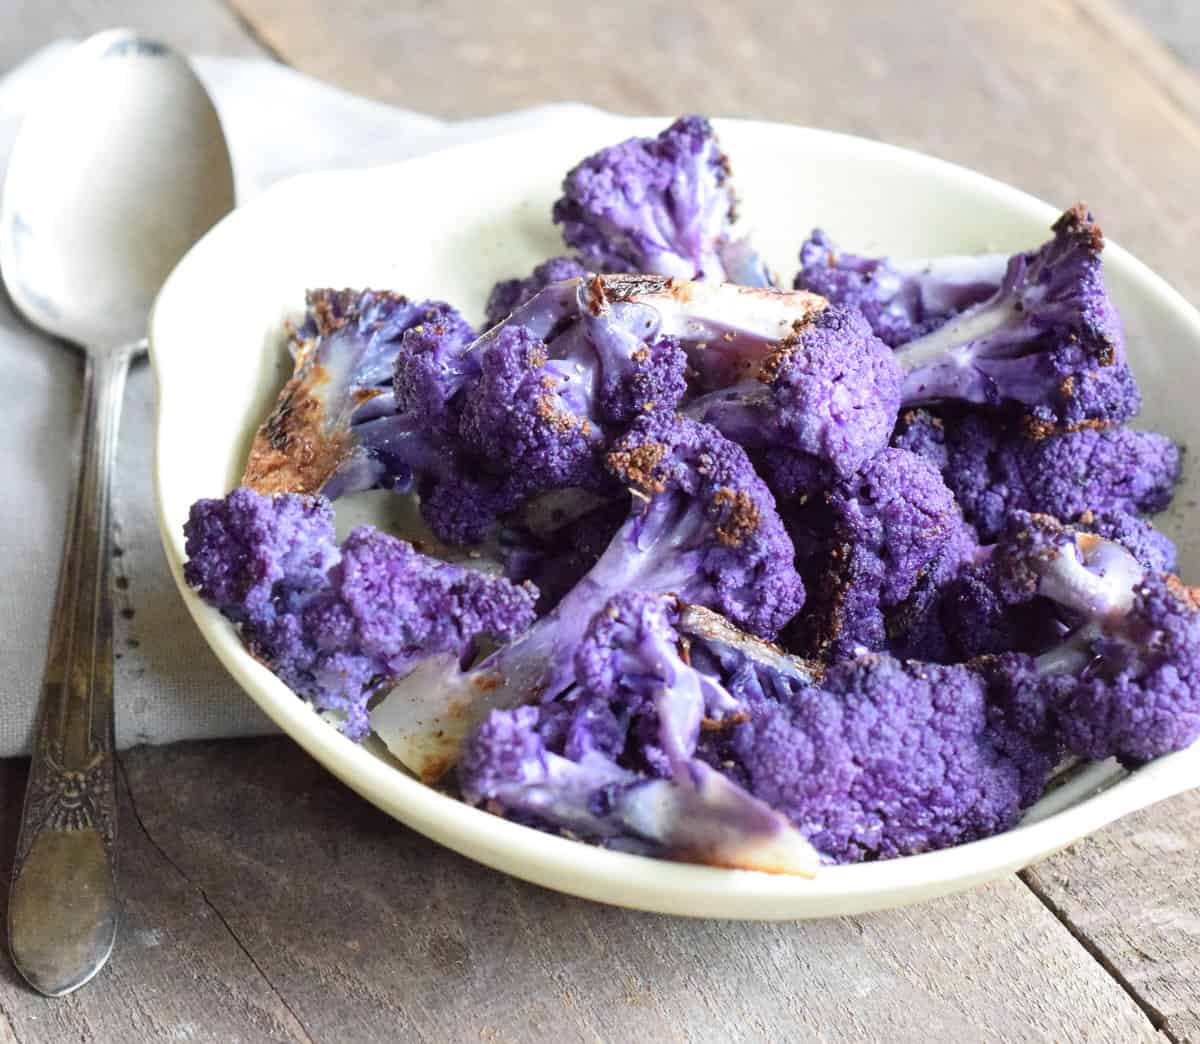 roasted purple cauliflower florets in a white bowl on a wooden surface